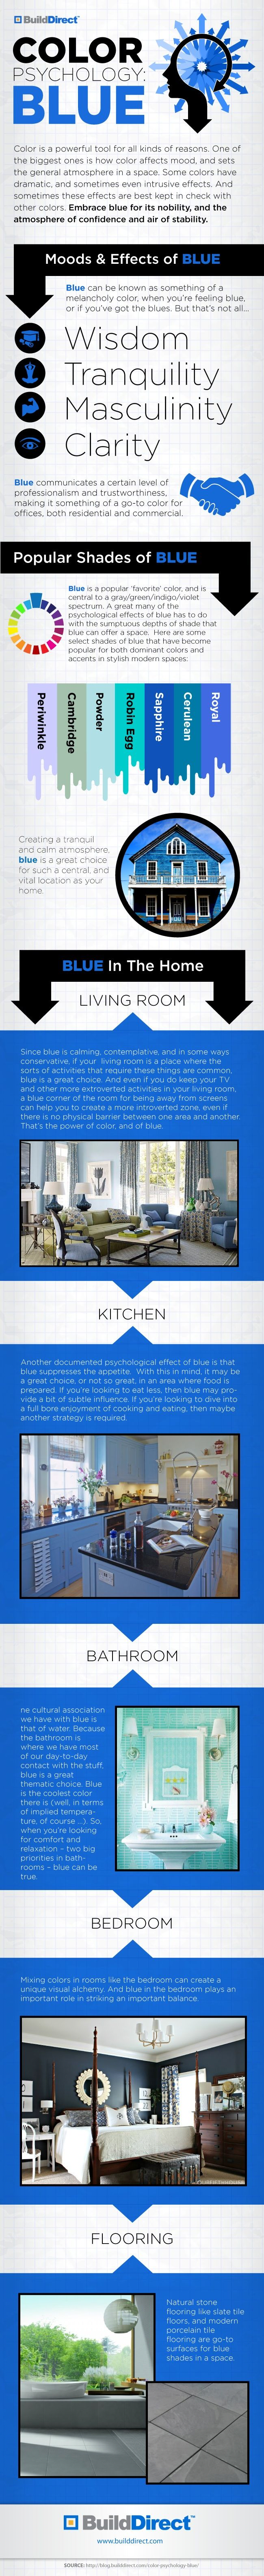 Emotional Interior Design: Using Blue